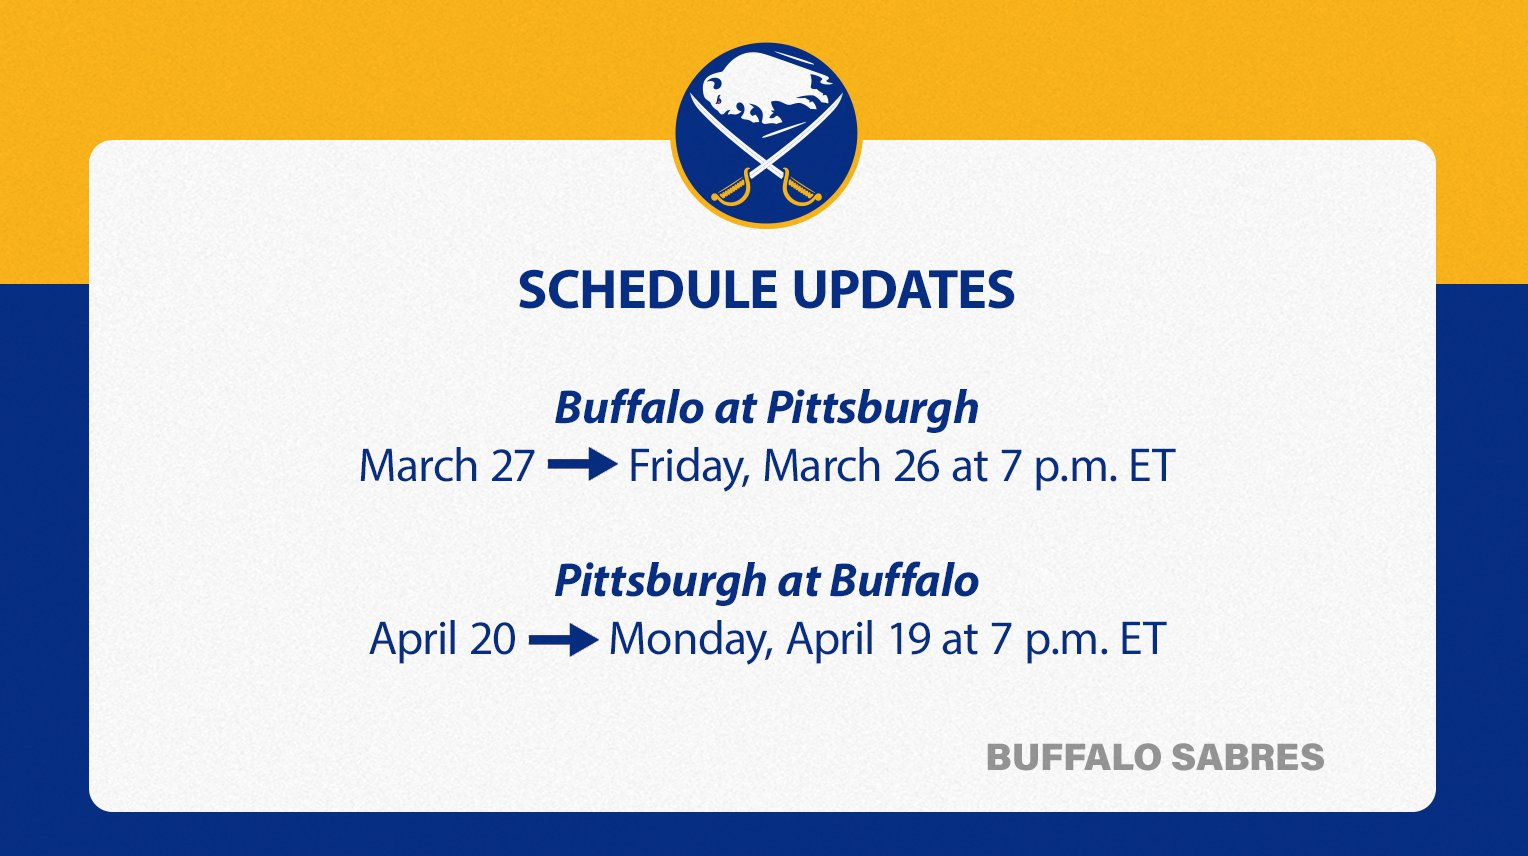 NHL announces date and time changes for pair of Sabres games - fingerlakes1.com